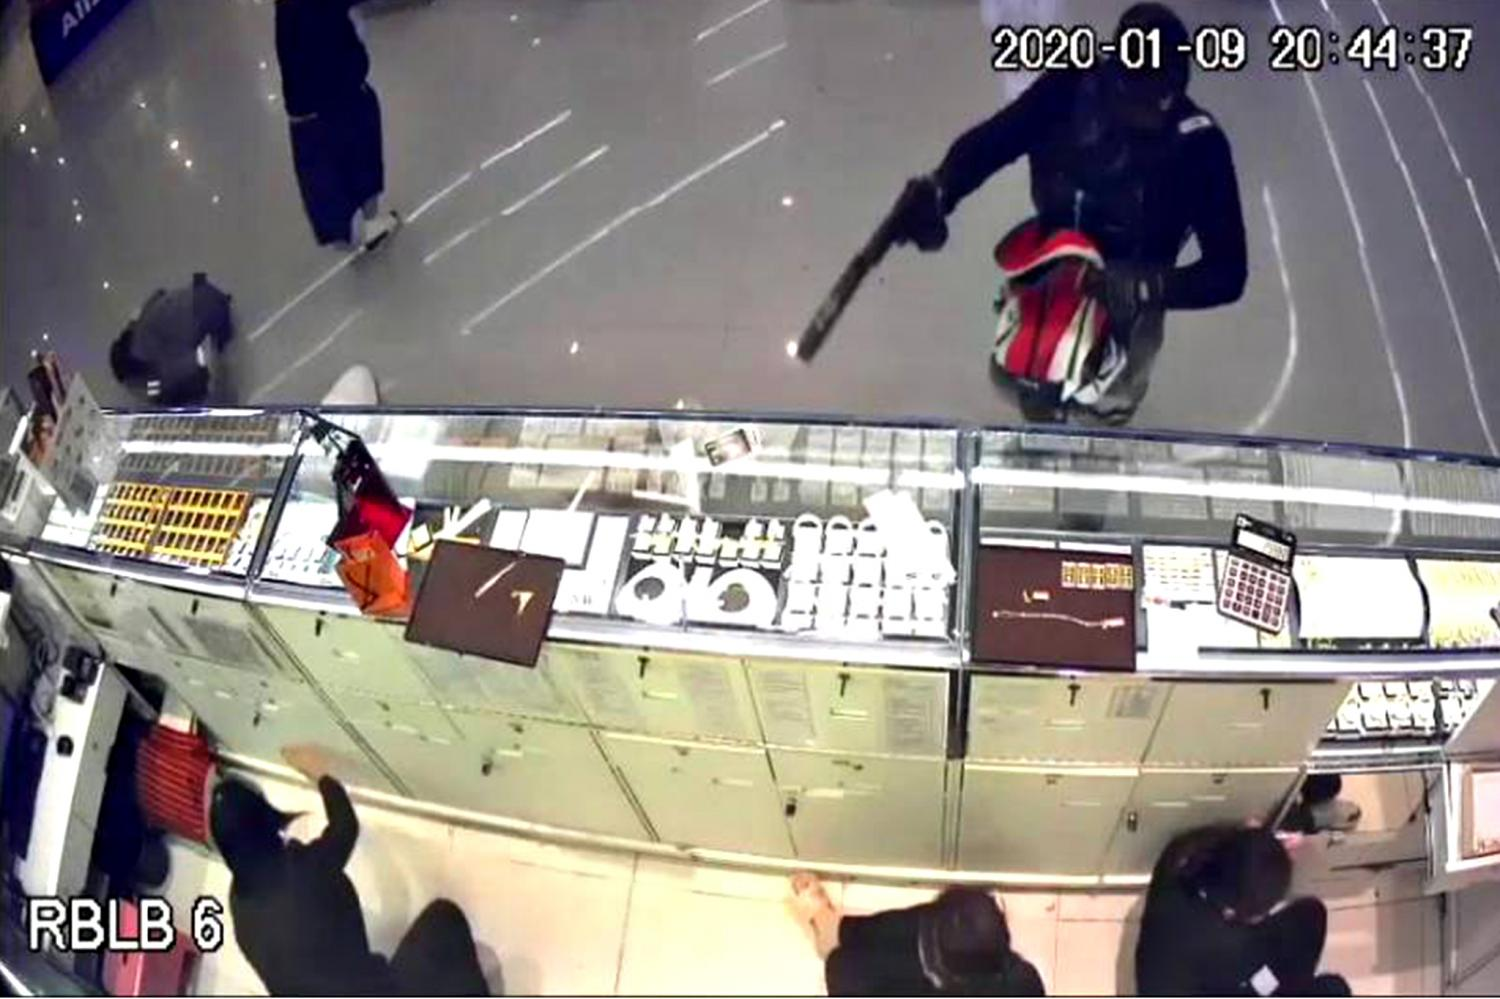 The robber who killed three people and injured four others during a gold shop heist in Lop Buri last week is believed to have fled Lop Buri to Chon Buri. (Photo from Aurora security camera)